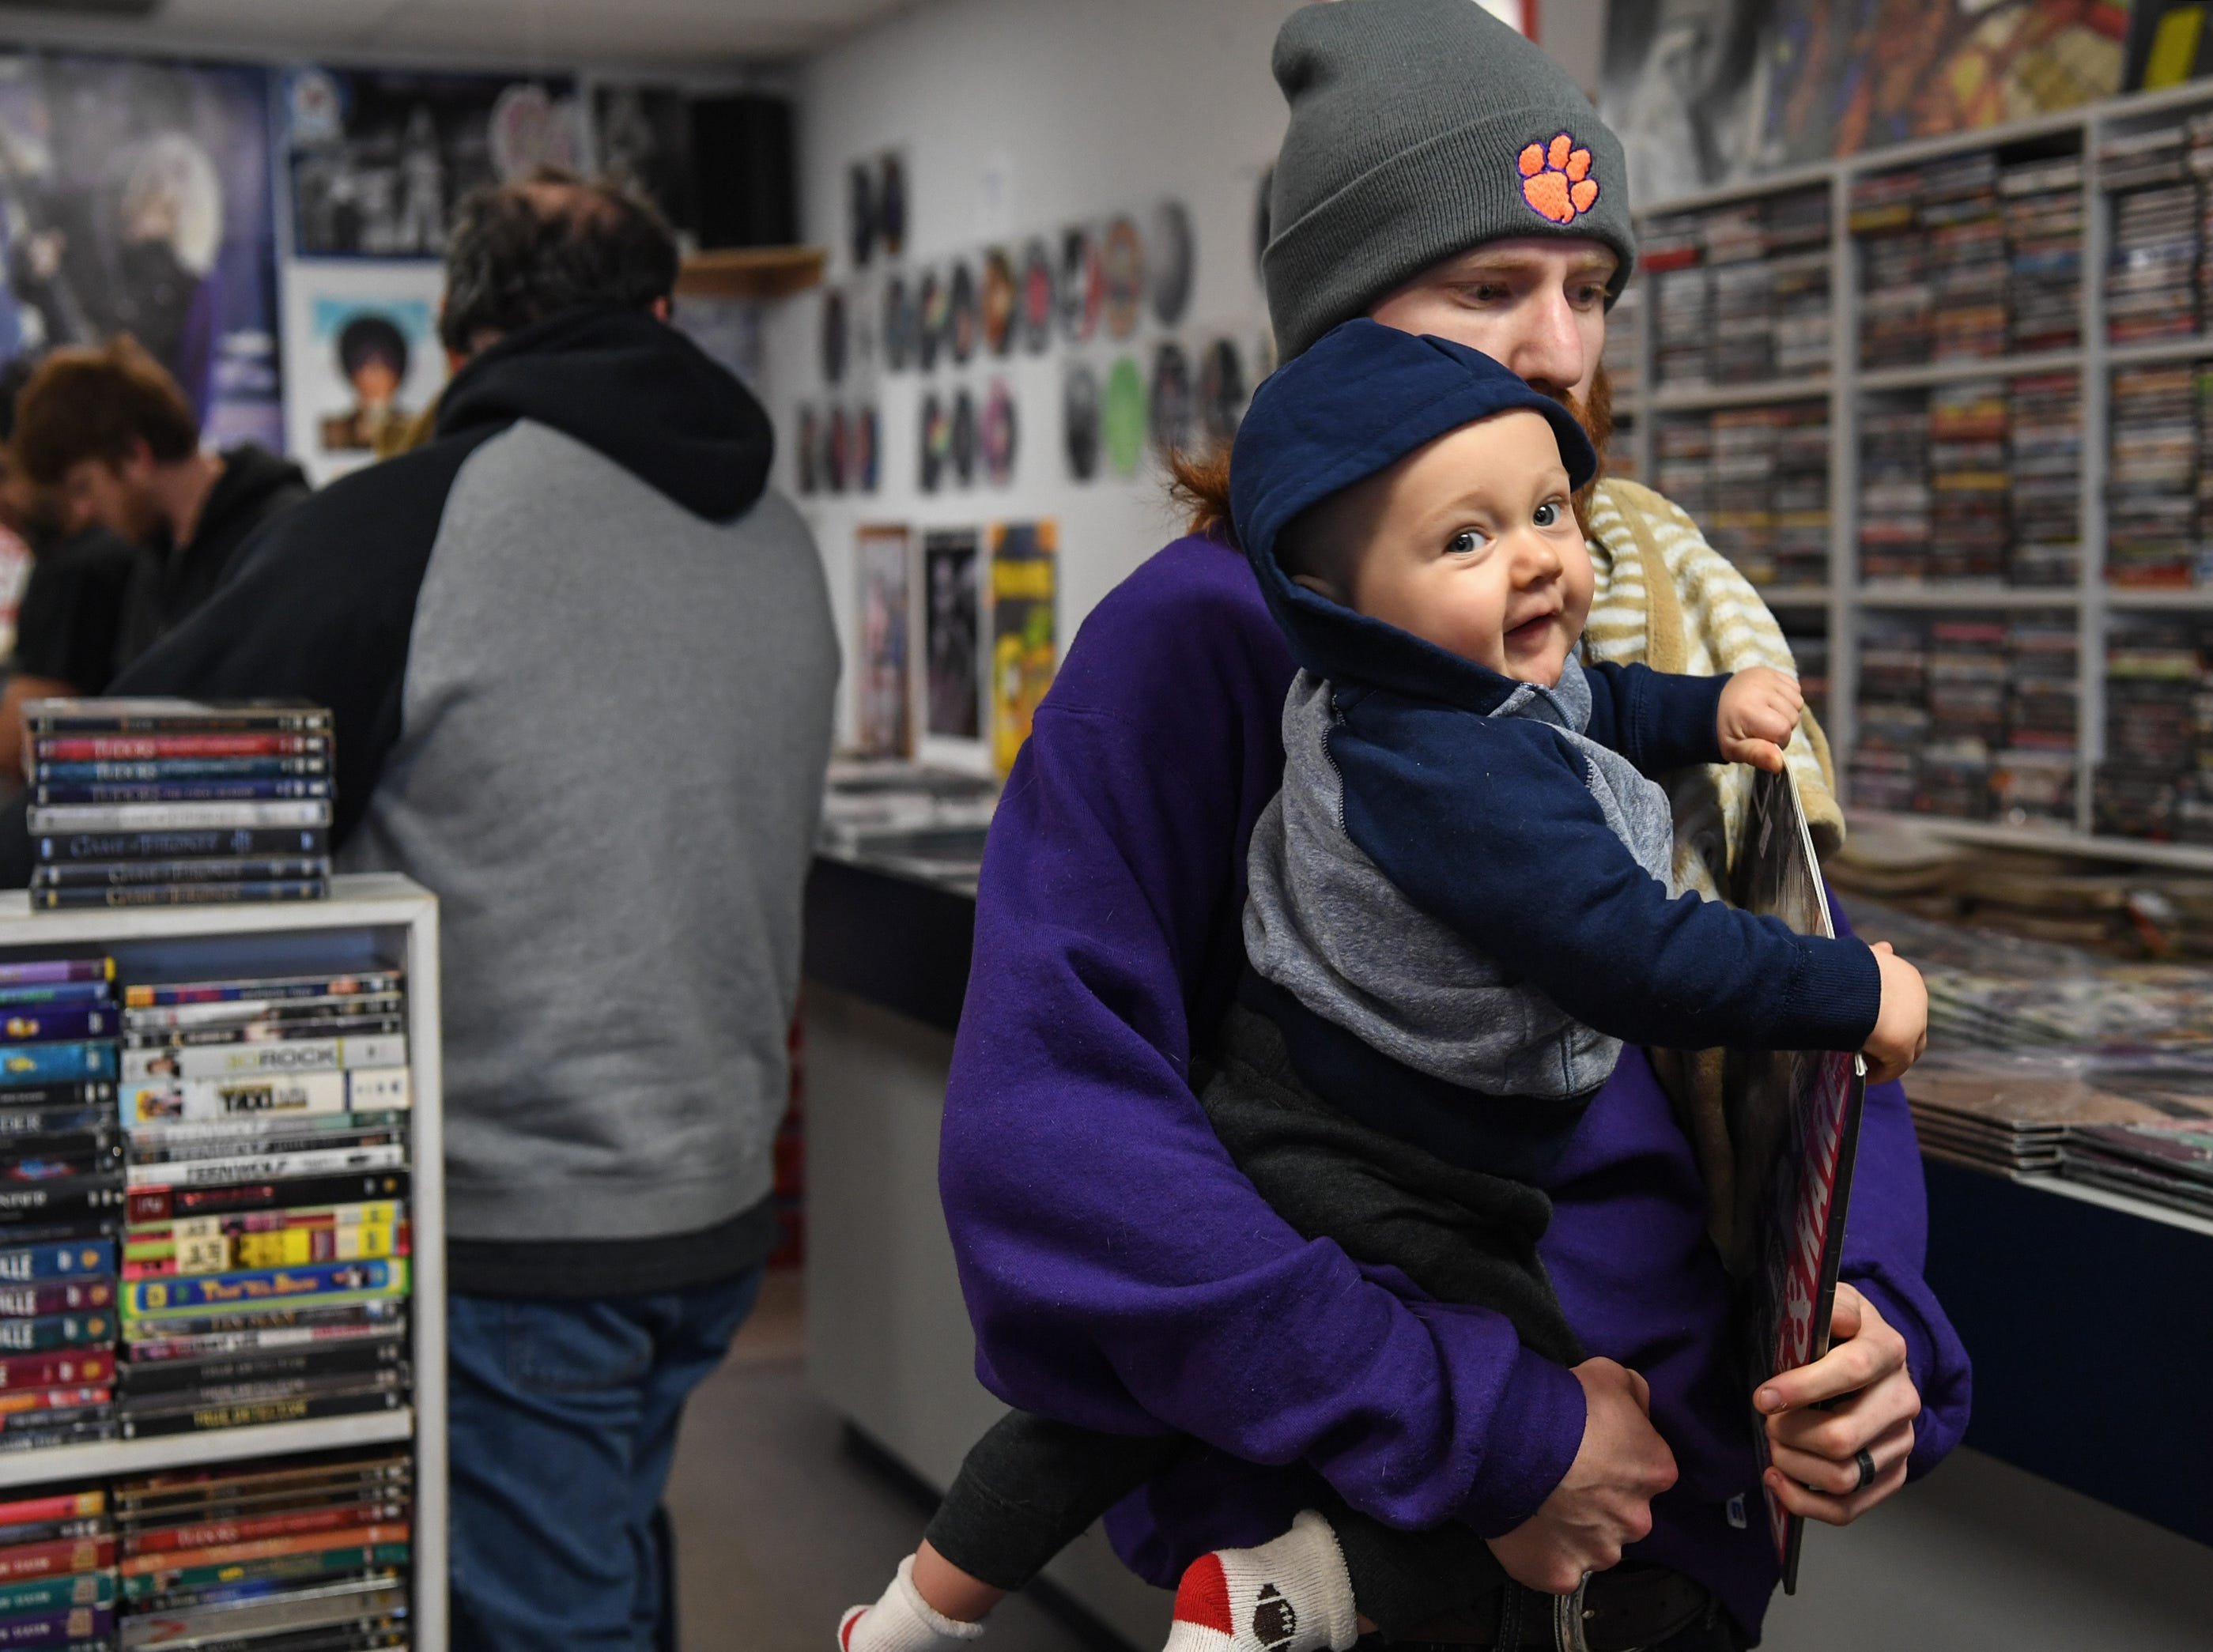 Jordan Maxwell and his son Jace of Pendleton shop at Rainbow Records for Record Store Day deals on Black Friday in Anderson on Friday, November 23, 2018.